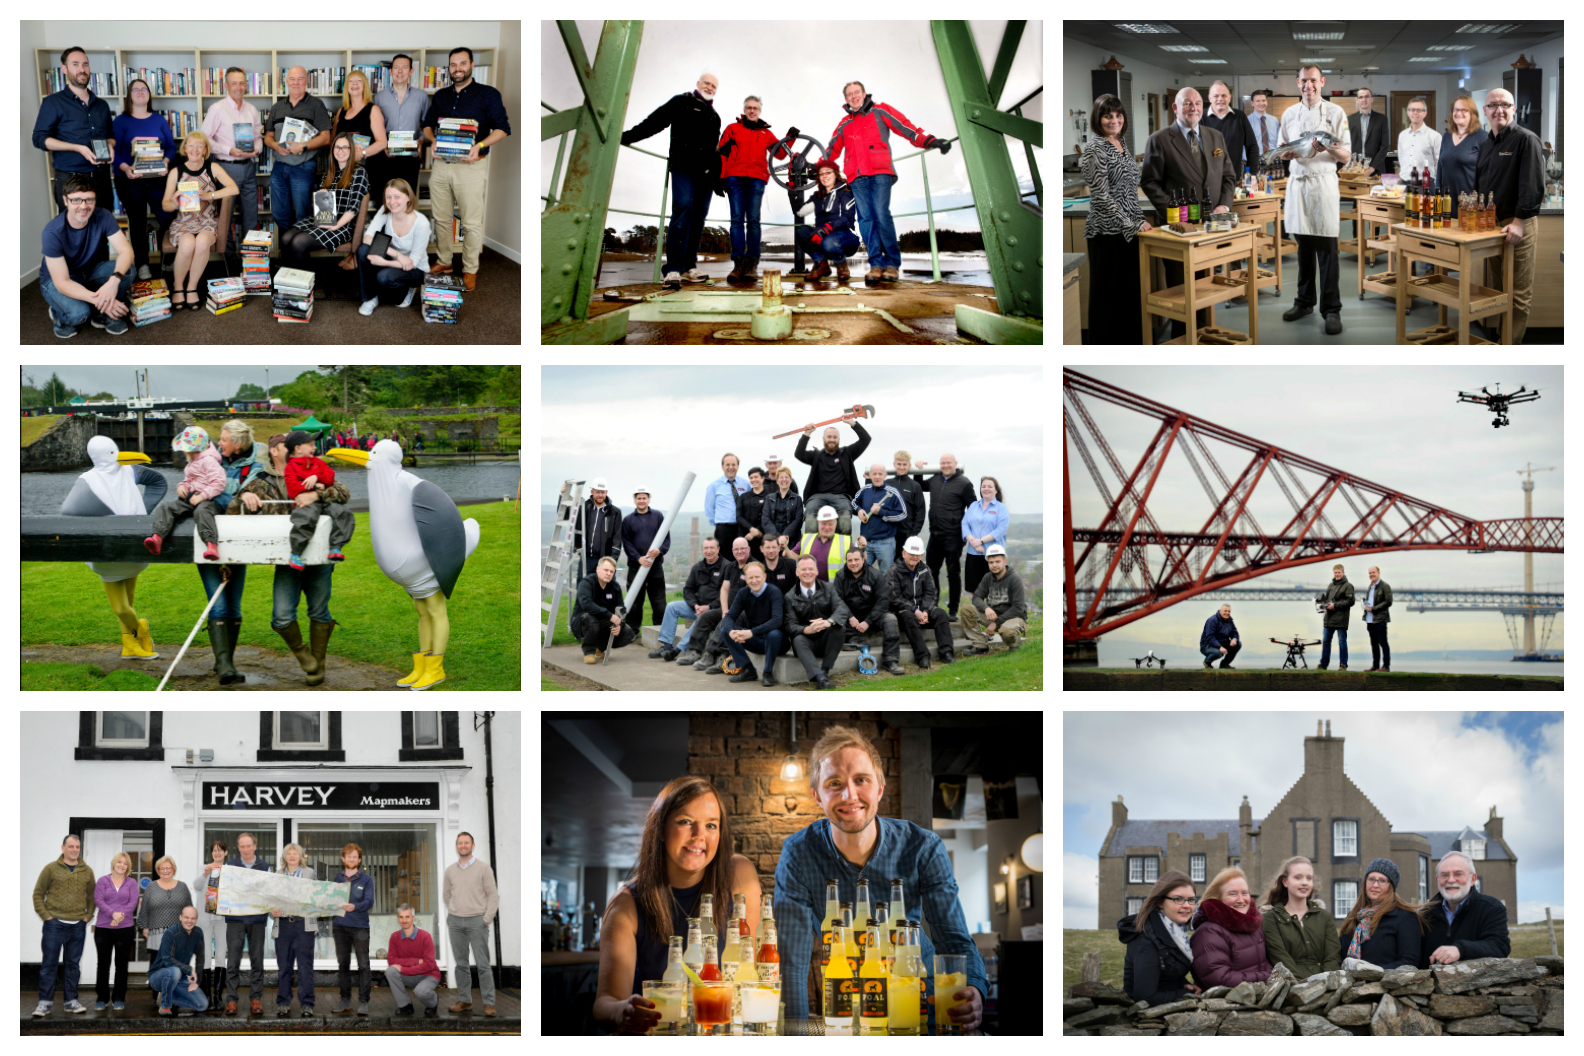 Some of Scotland's consortium co-operatives, community co-operatives and employee-owned businesses